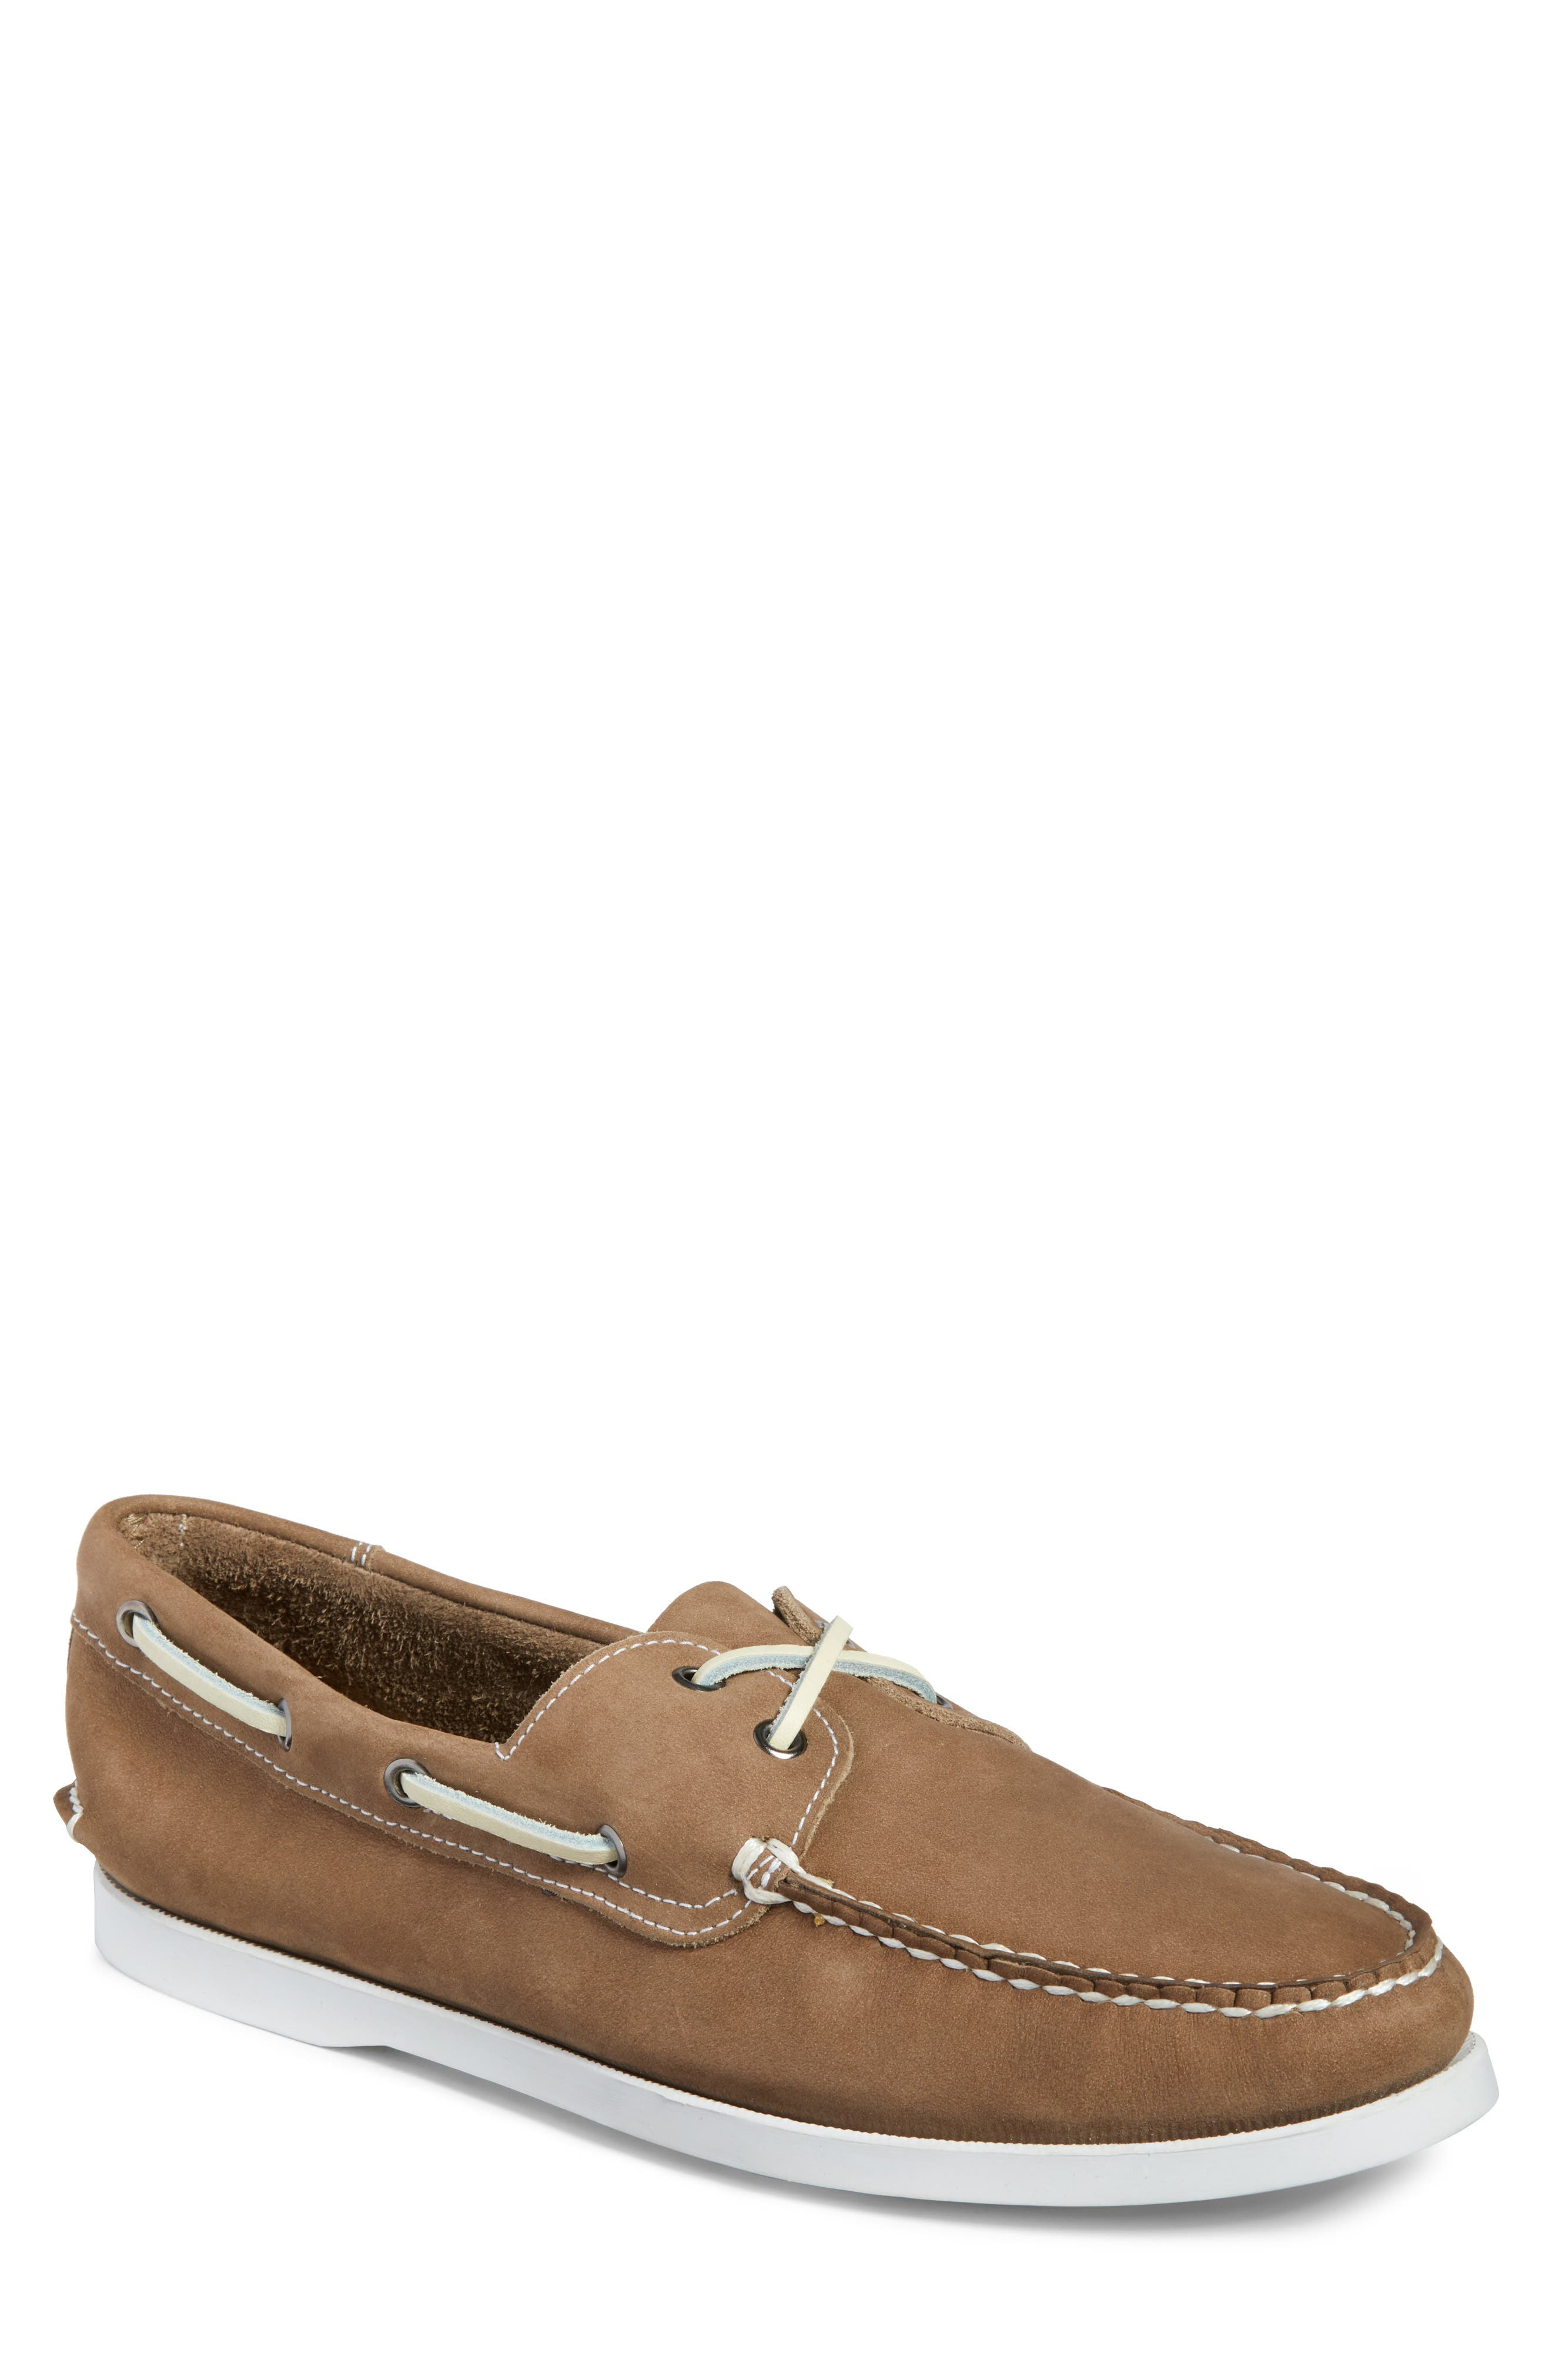 Pacific Boat Shoe,                             Main thumbnail 1, color,                             GREY NUBUCK